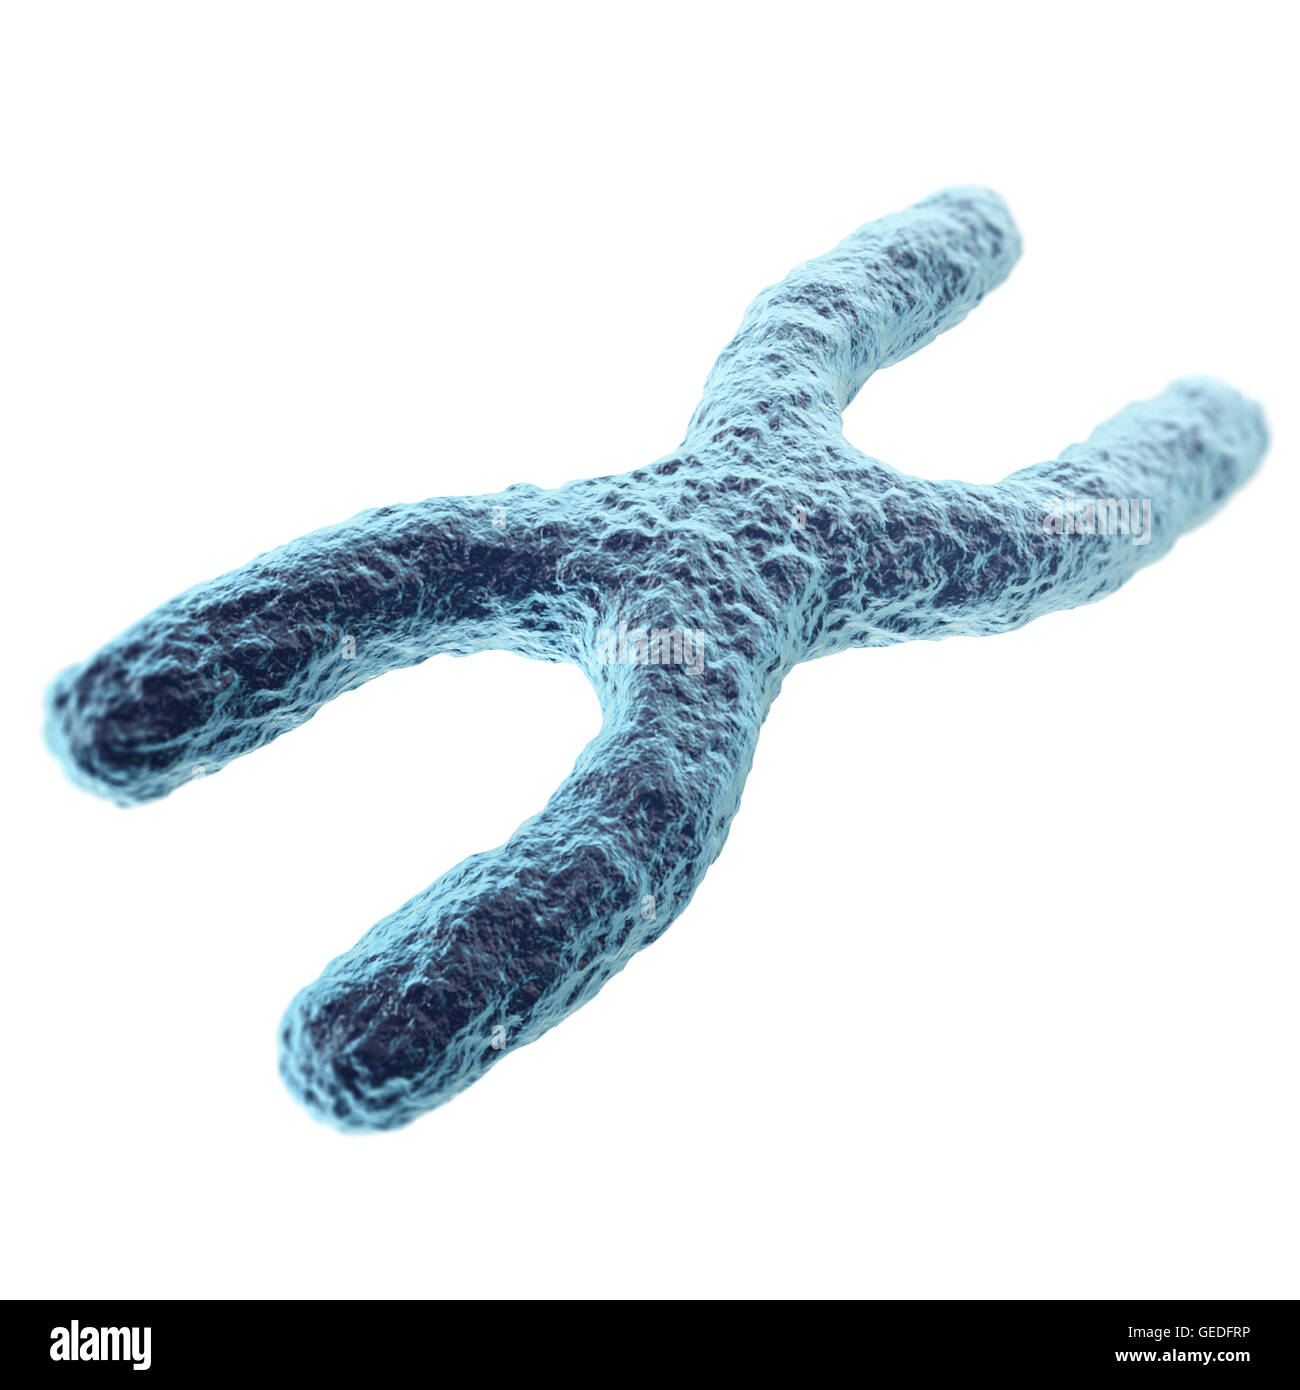 Chromosome isolated on white background. with depth of field effect, scientific concept. 3d illustration - Stock Image